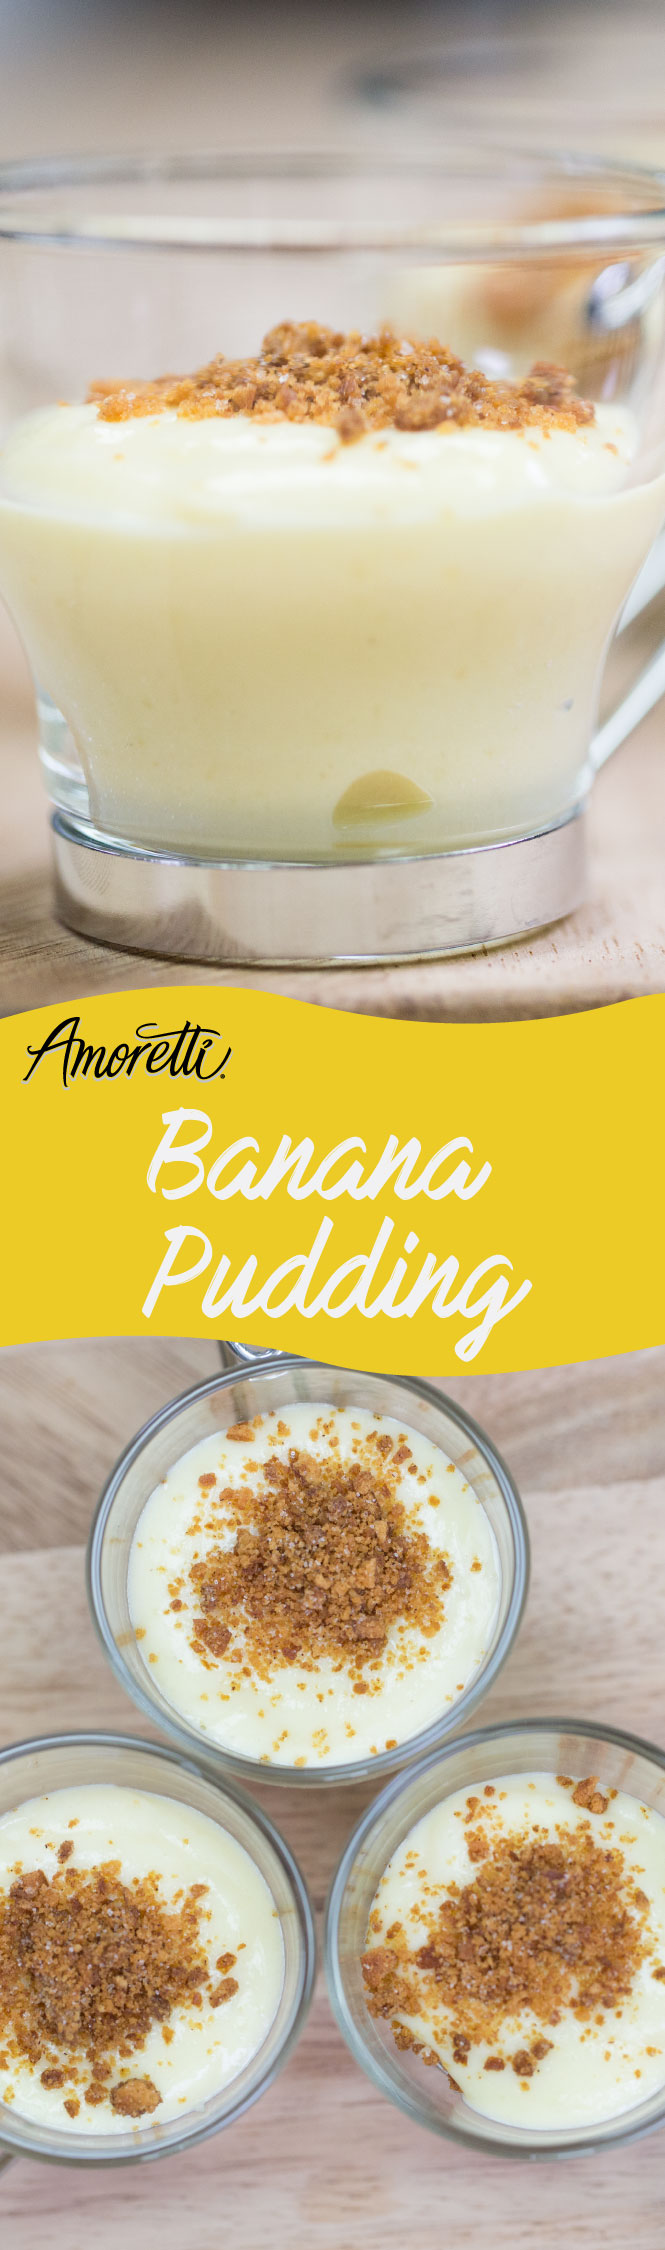 Go absolutely bananas because this banana pudding is just too good!